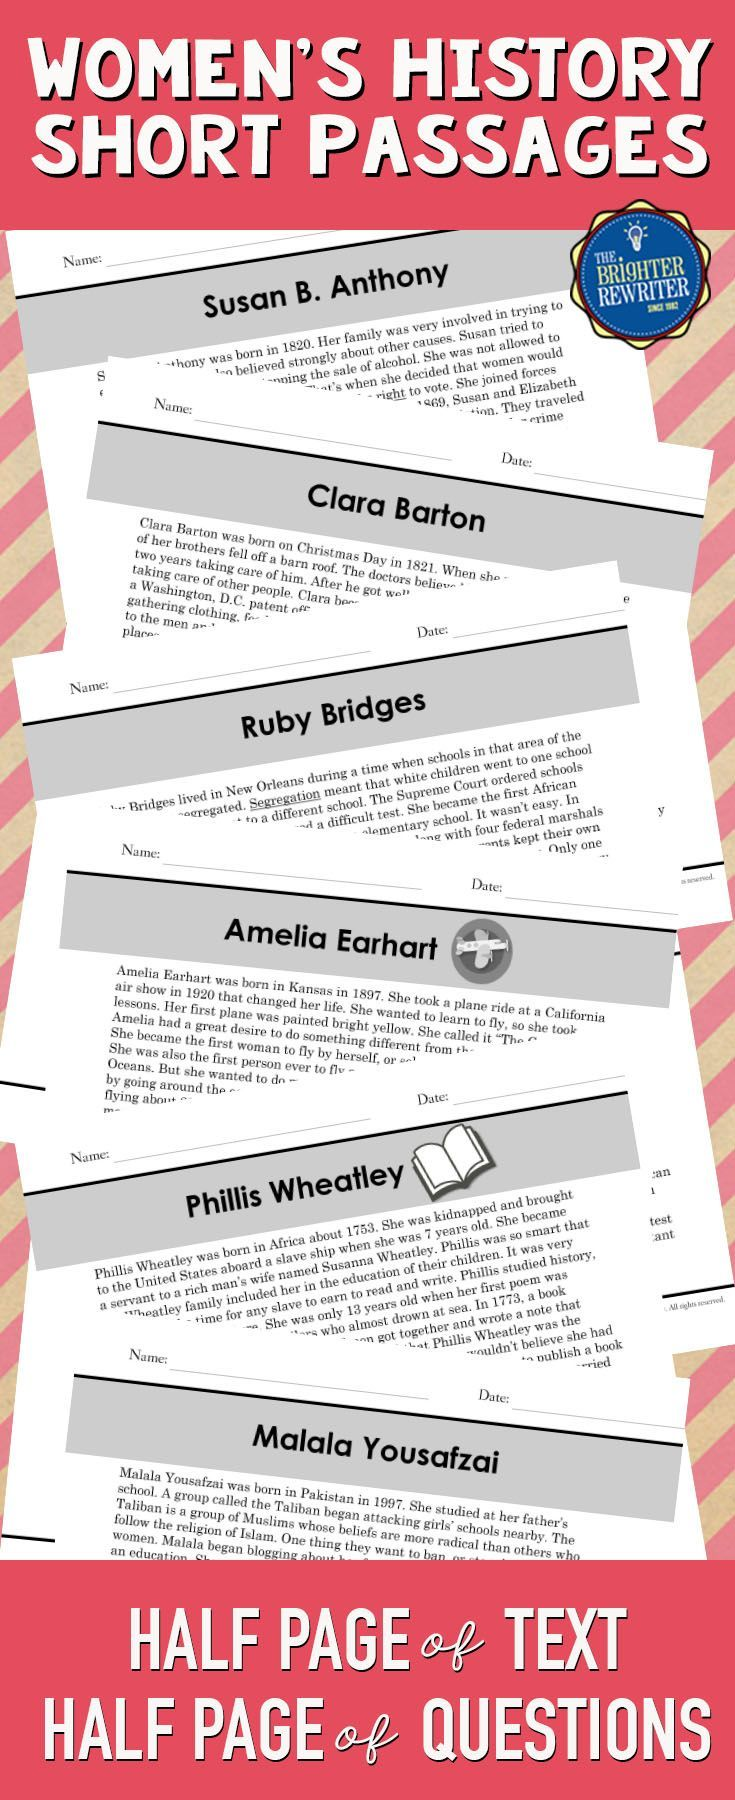 These 6 nonfiction mini-passages have the informational text and 4 multiple-choice comprehension questions on one page. The paragraphs are about the lives of Phillis Wheatley, Susan B. Anthony, Clara Barton, Amelia Earhart, Ruby Bridges, and Malala Yousafzai.  The questions include a variety of reading skills and are modeled after the types of questions on standardized reading tests. Great for Women's History Month!